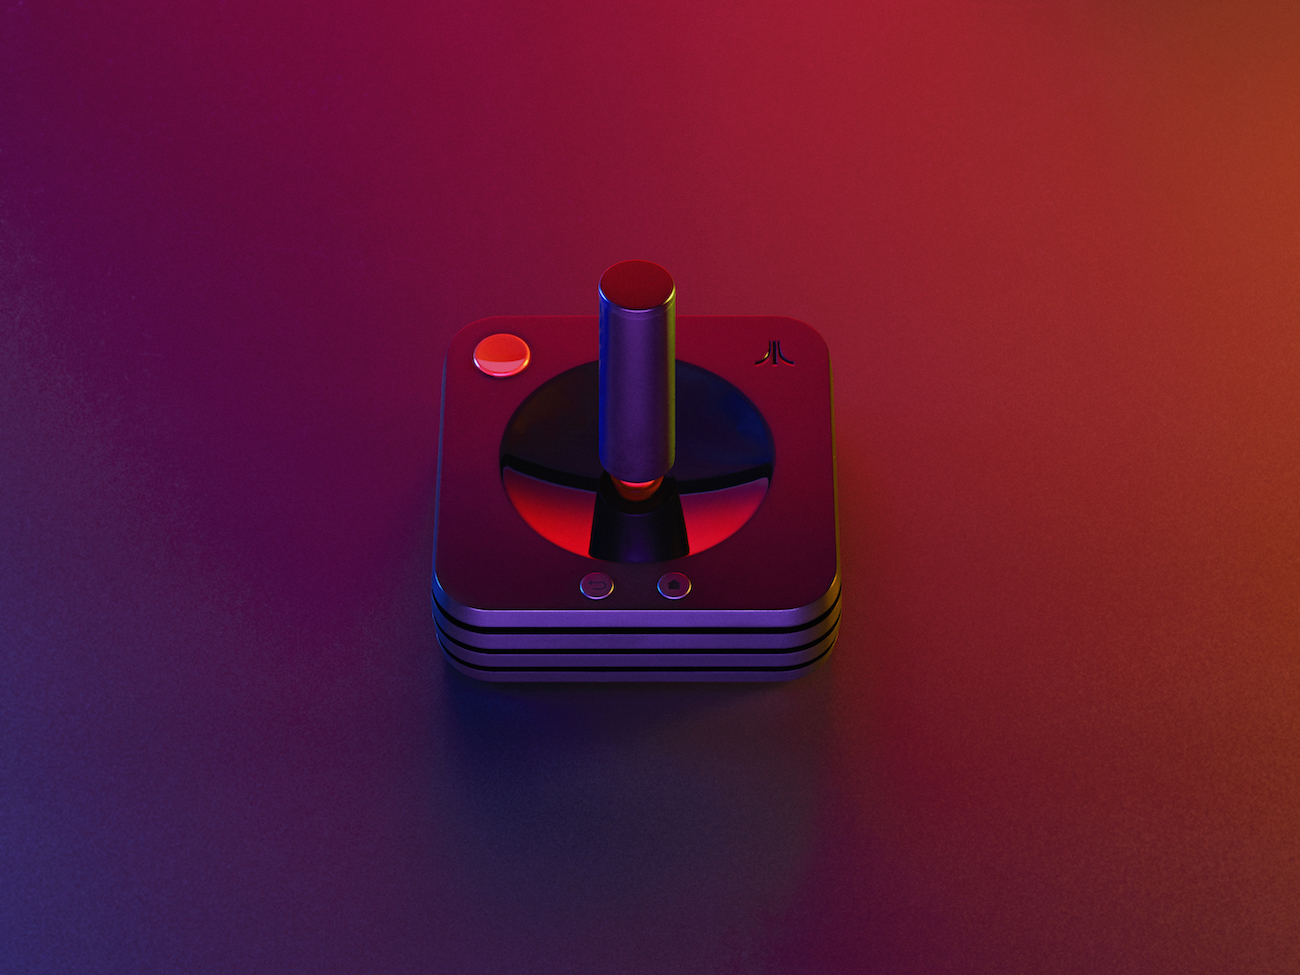 05162018_Atari_Stylized_Classic_Joystick_0150_0159_STACKED_FINAL